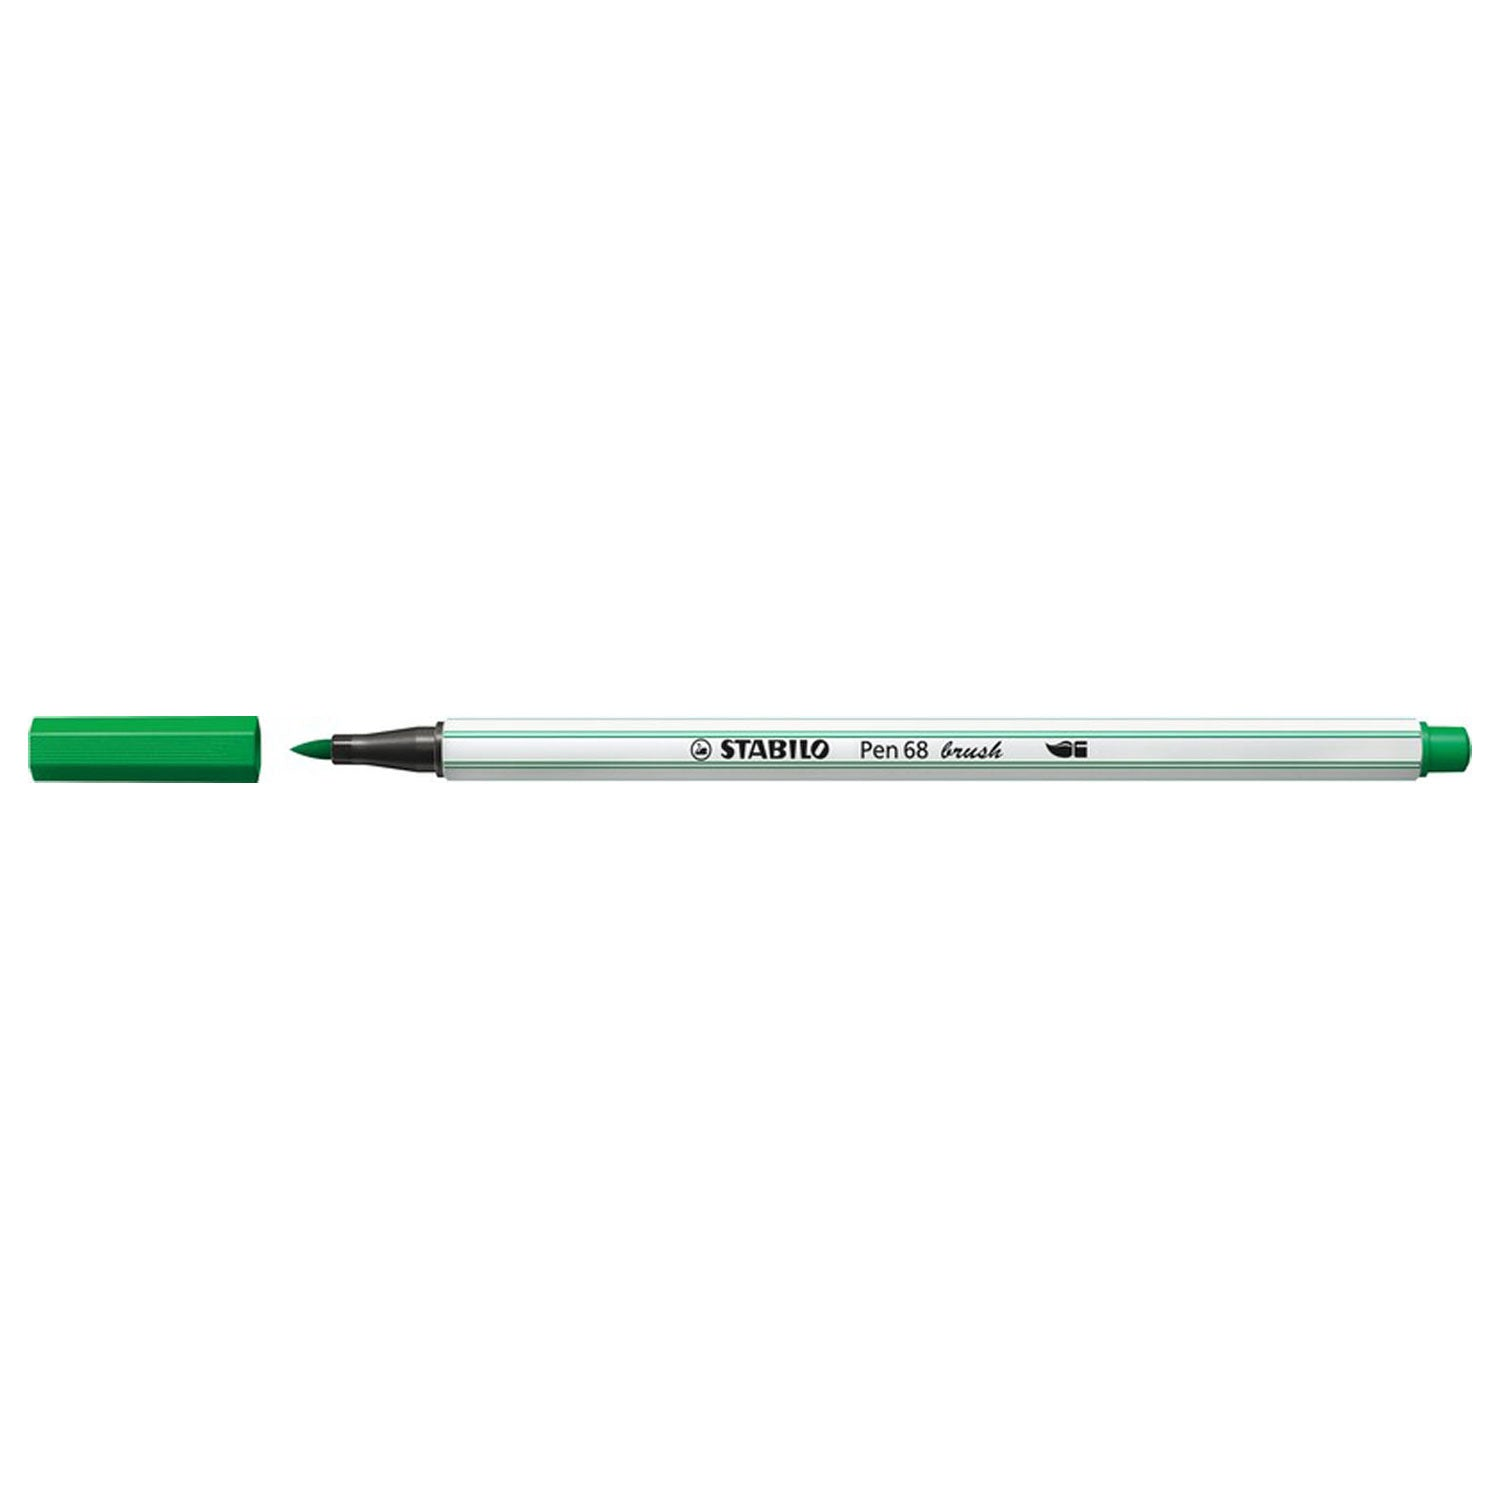 Stabilo Pen 68 Brush - 36 Groen - JournalnStuff